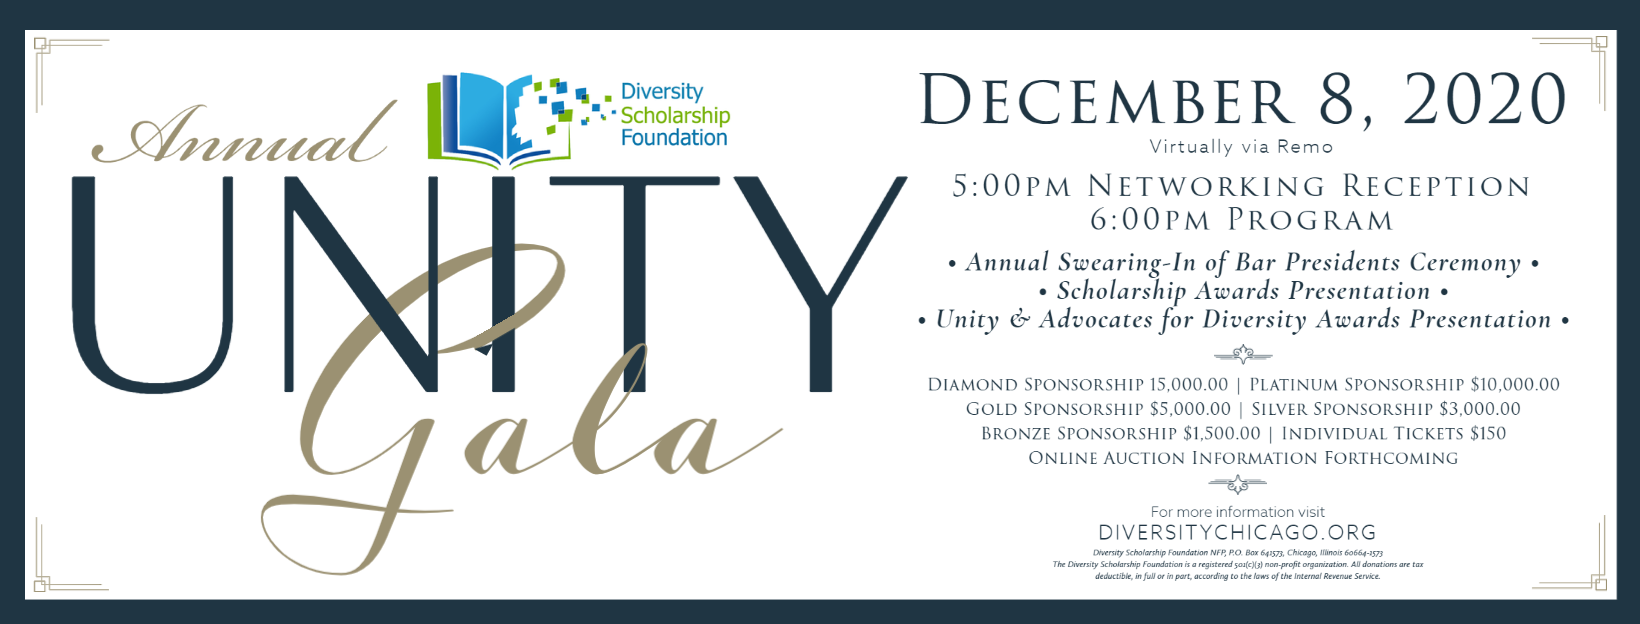 Join us at the Unity Gala on December 8, 2020!